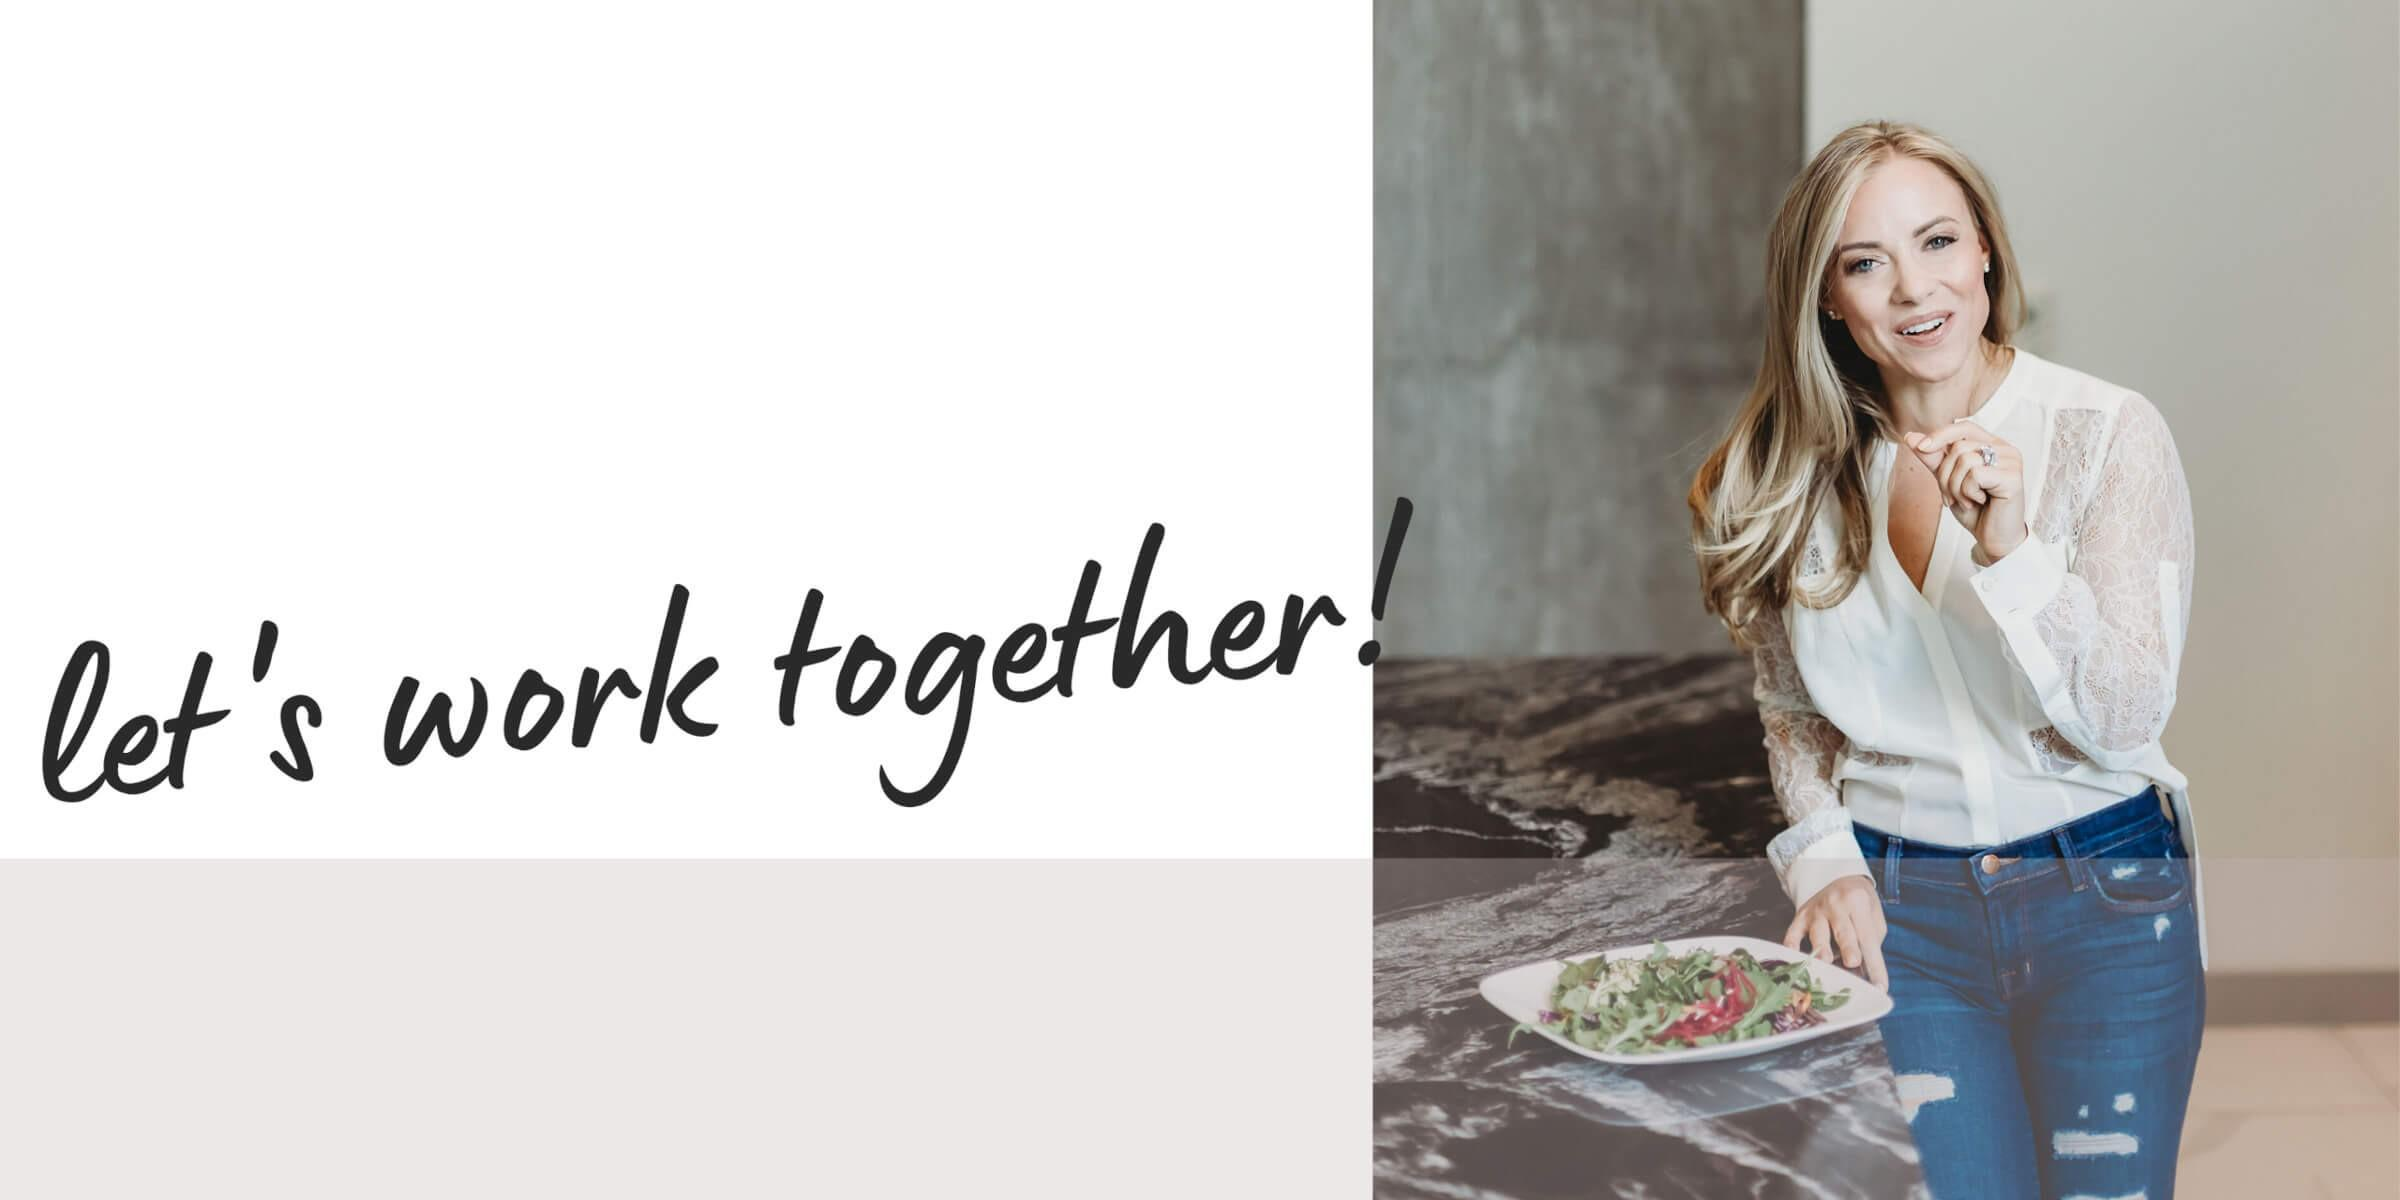 Work together with Kristen Blake on your integrated health and wellness.